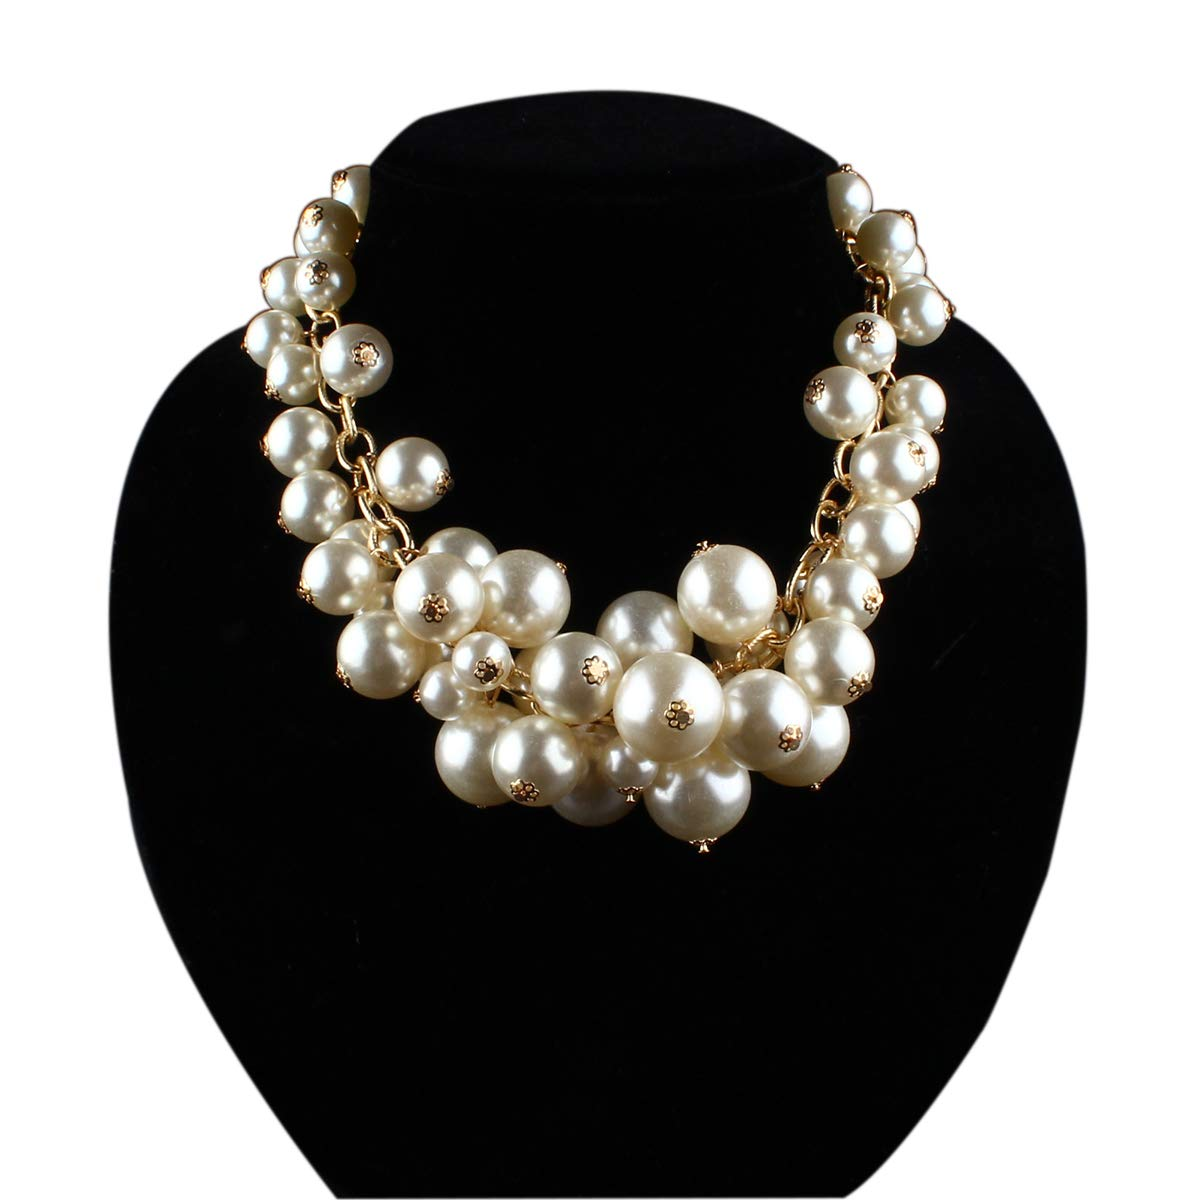 Utop Simulated Pearl Choker Necklace for Women Bridal Wedding Pearl Statement Necklace LeeLoo